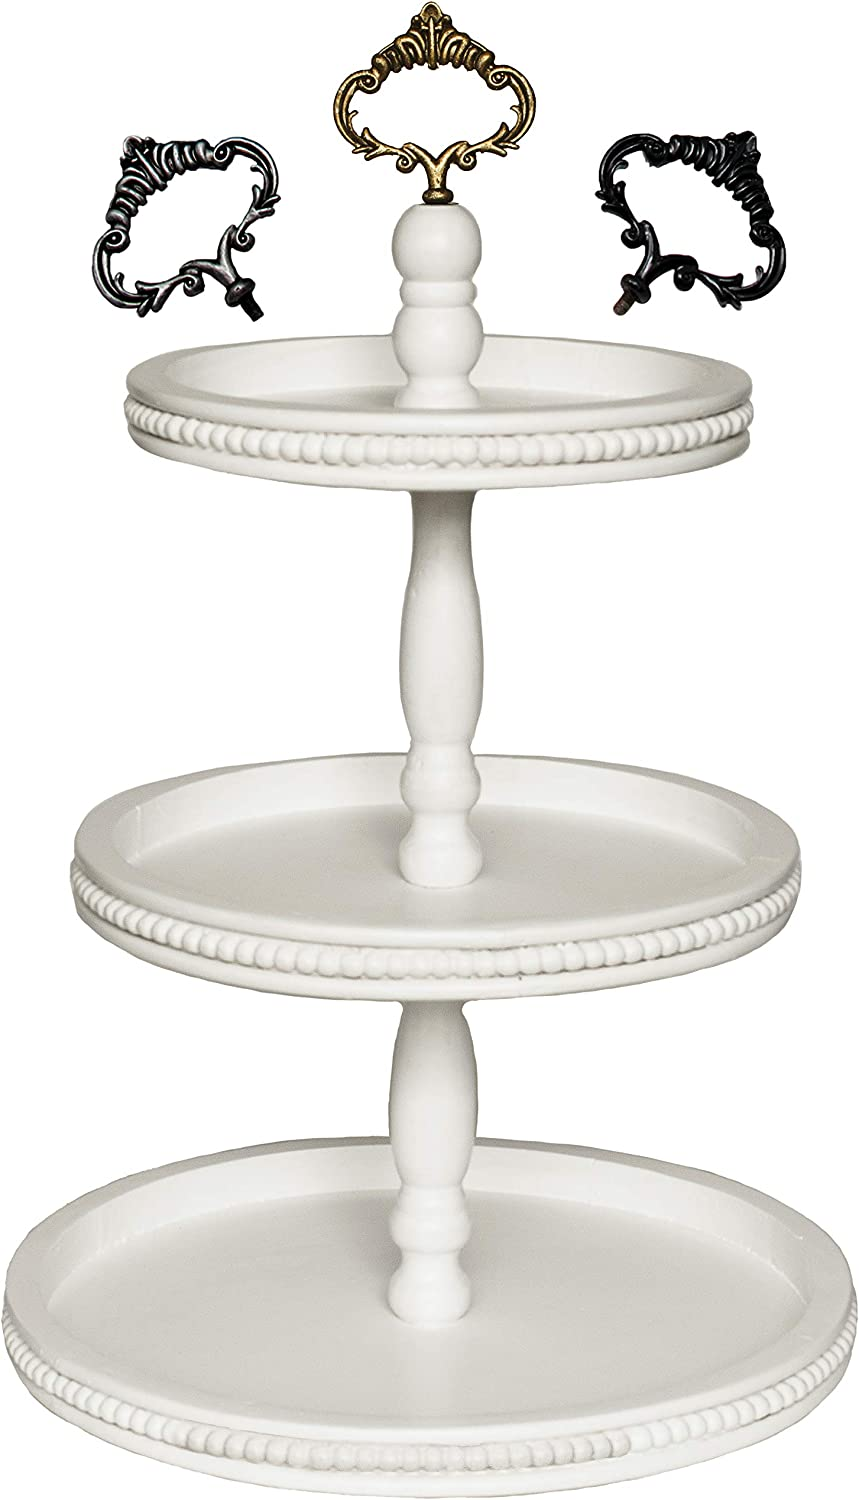 Felt Creative Home Goods 3 Tiered Tray Wooden Serving Stand Large Beaded Tray for Home Decor Display Farmhouse Country Decoration Kitchen or Dining. Includes 3 Finial Custom Handles (White)